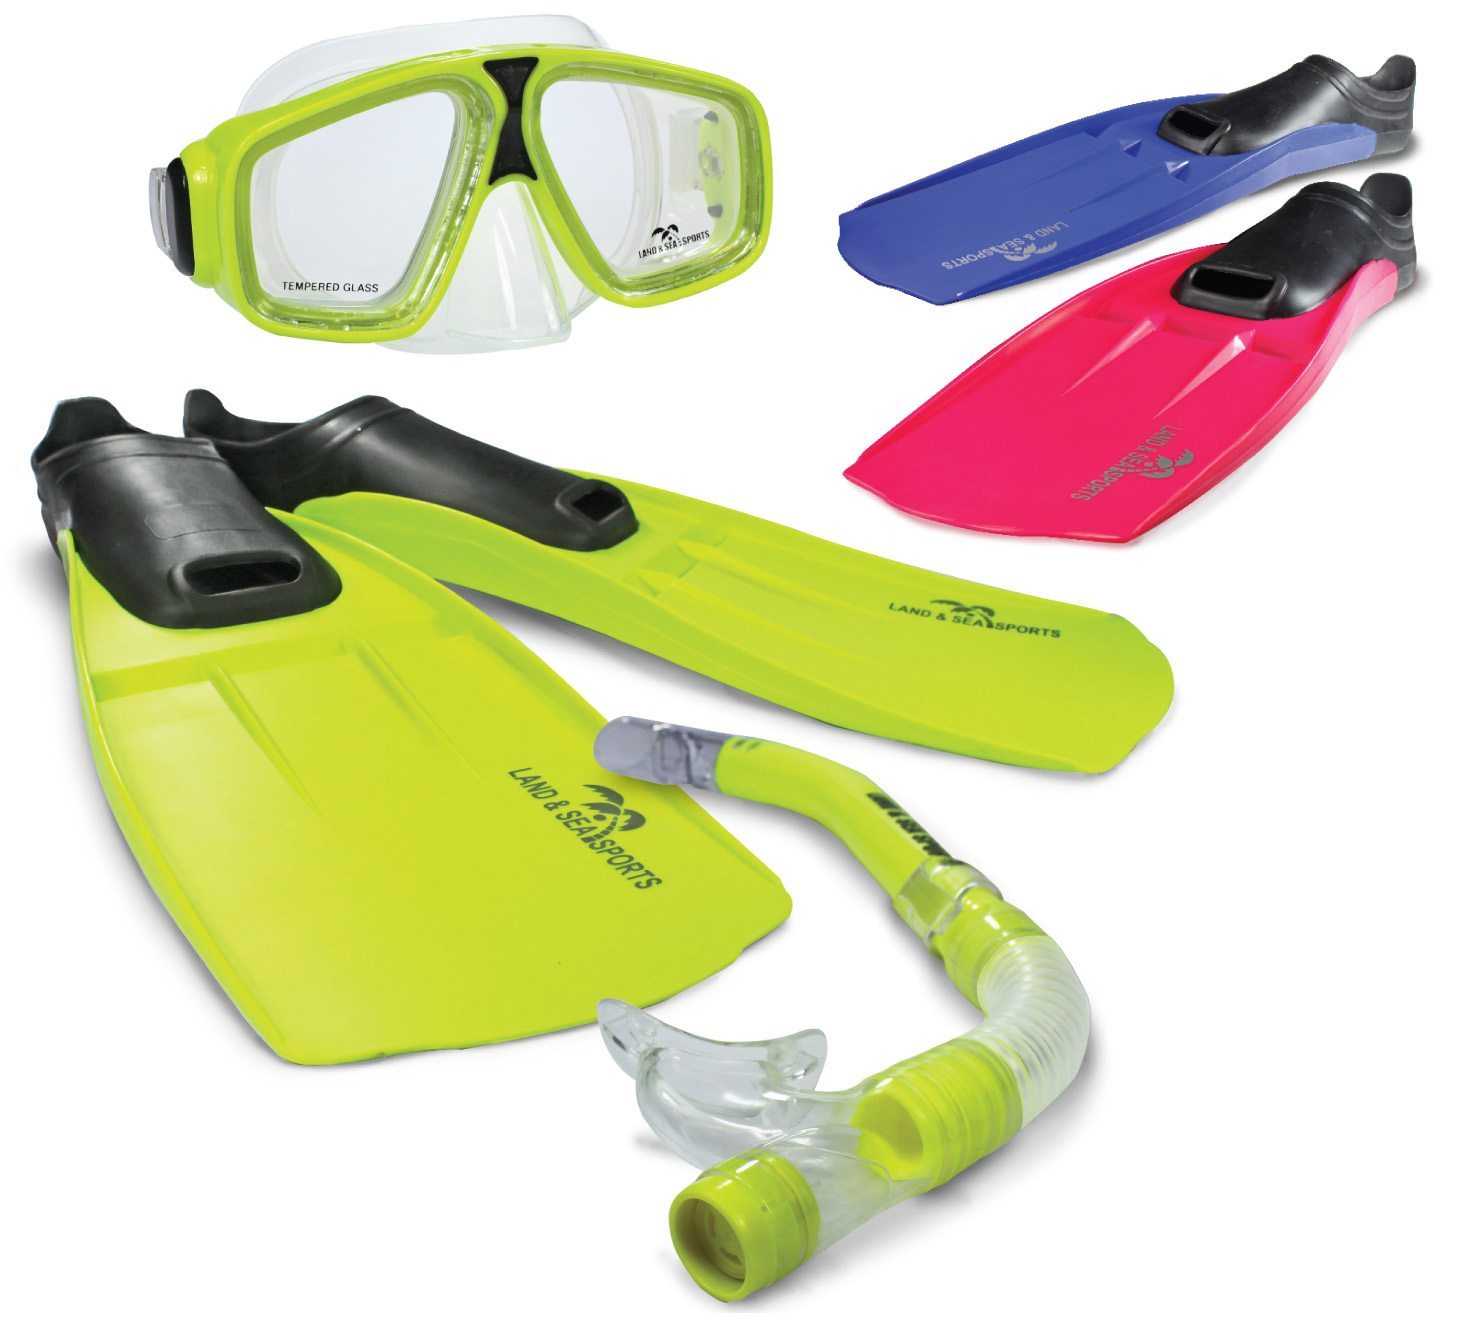 Adventurer complete snorkel set